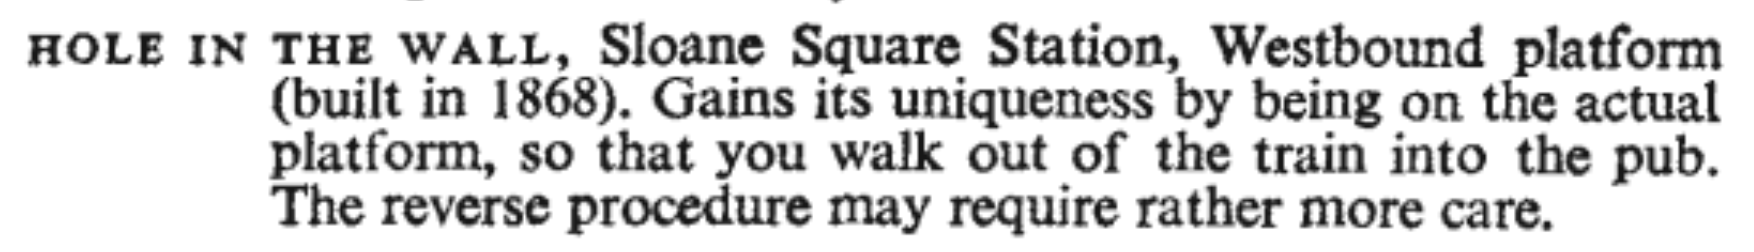 Description of Sloane Square's 'Hole in the Wall' pub from a 1950s guide to London